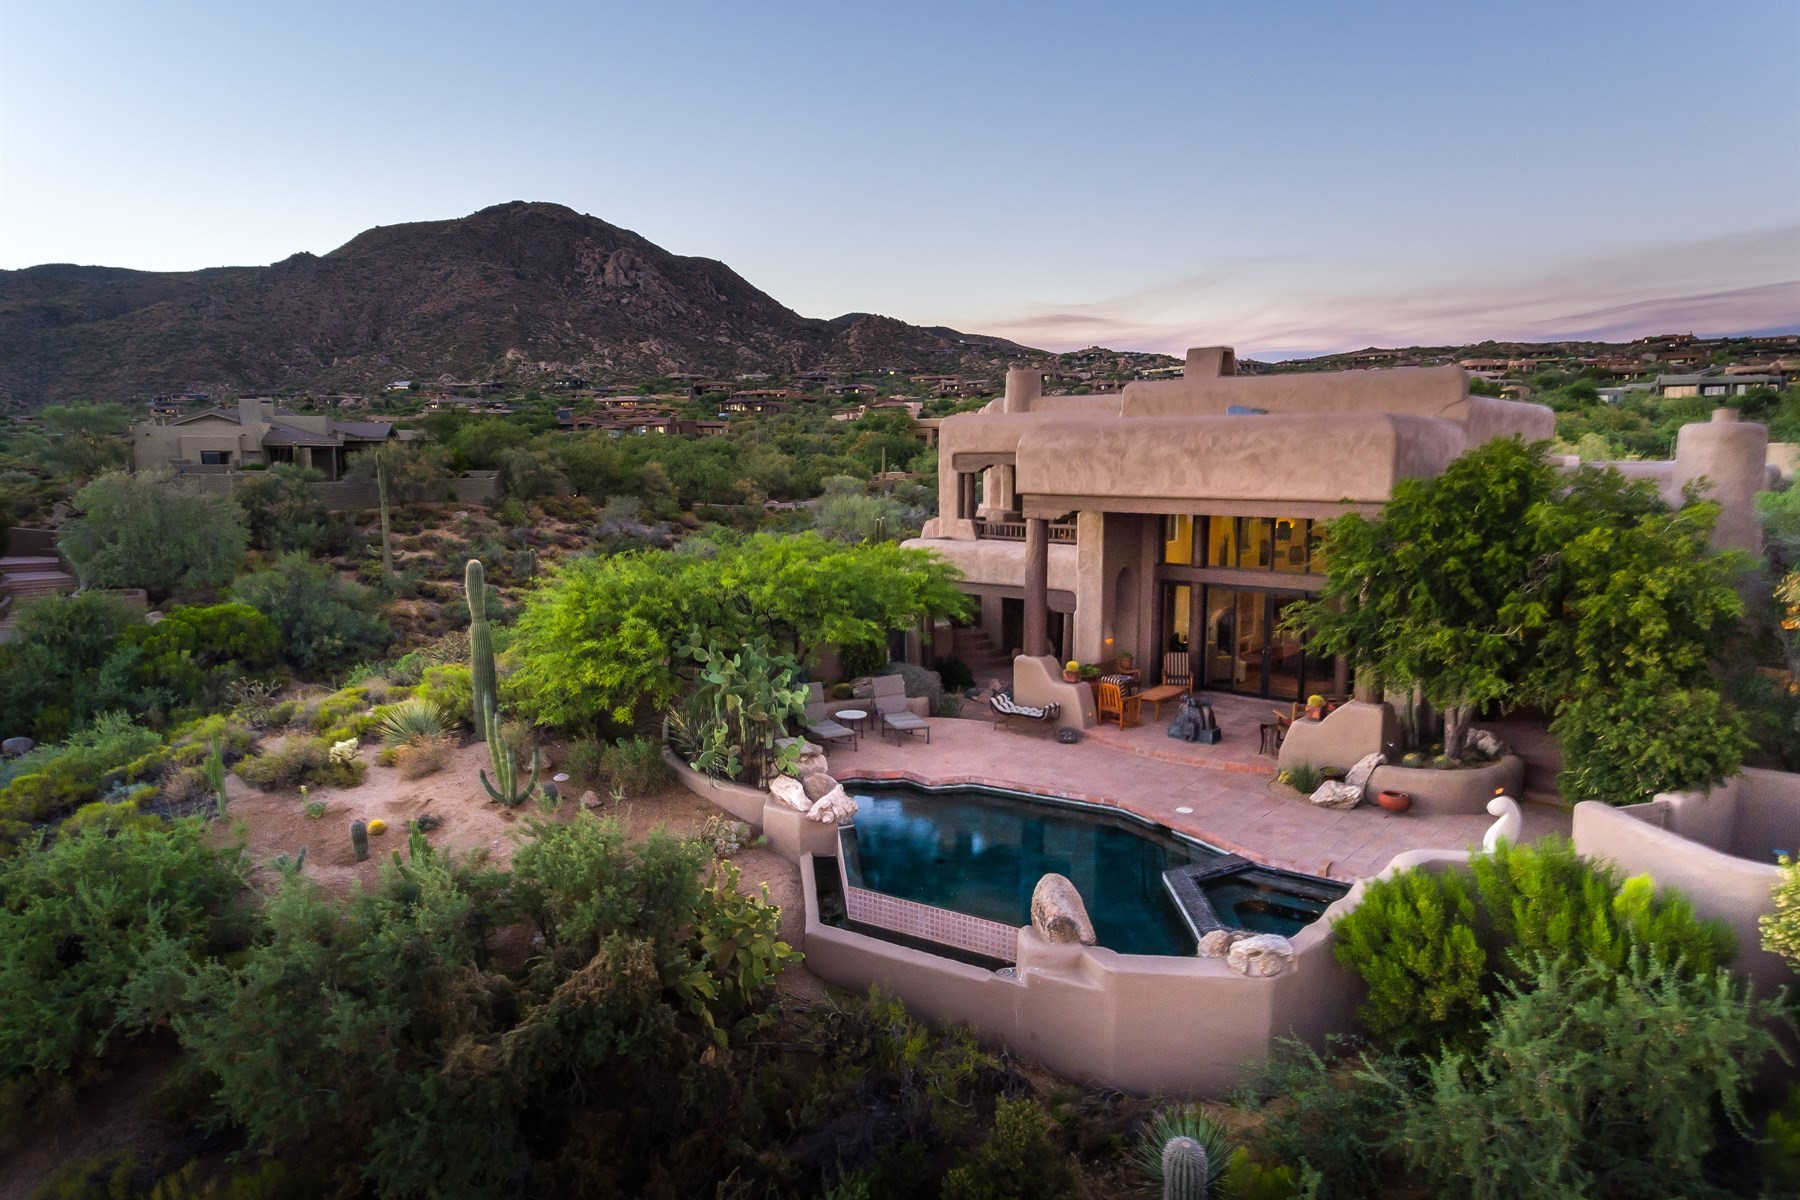 Single Family Home for Sale at Wonderful residence in Desert Mountain 41634 N 110th Way, Scottsdale, Arizona, 85262 United States